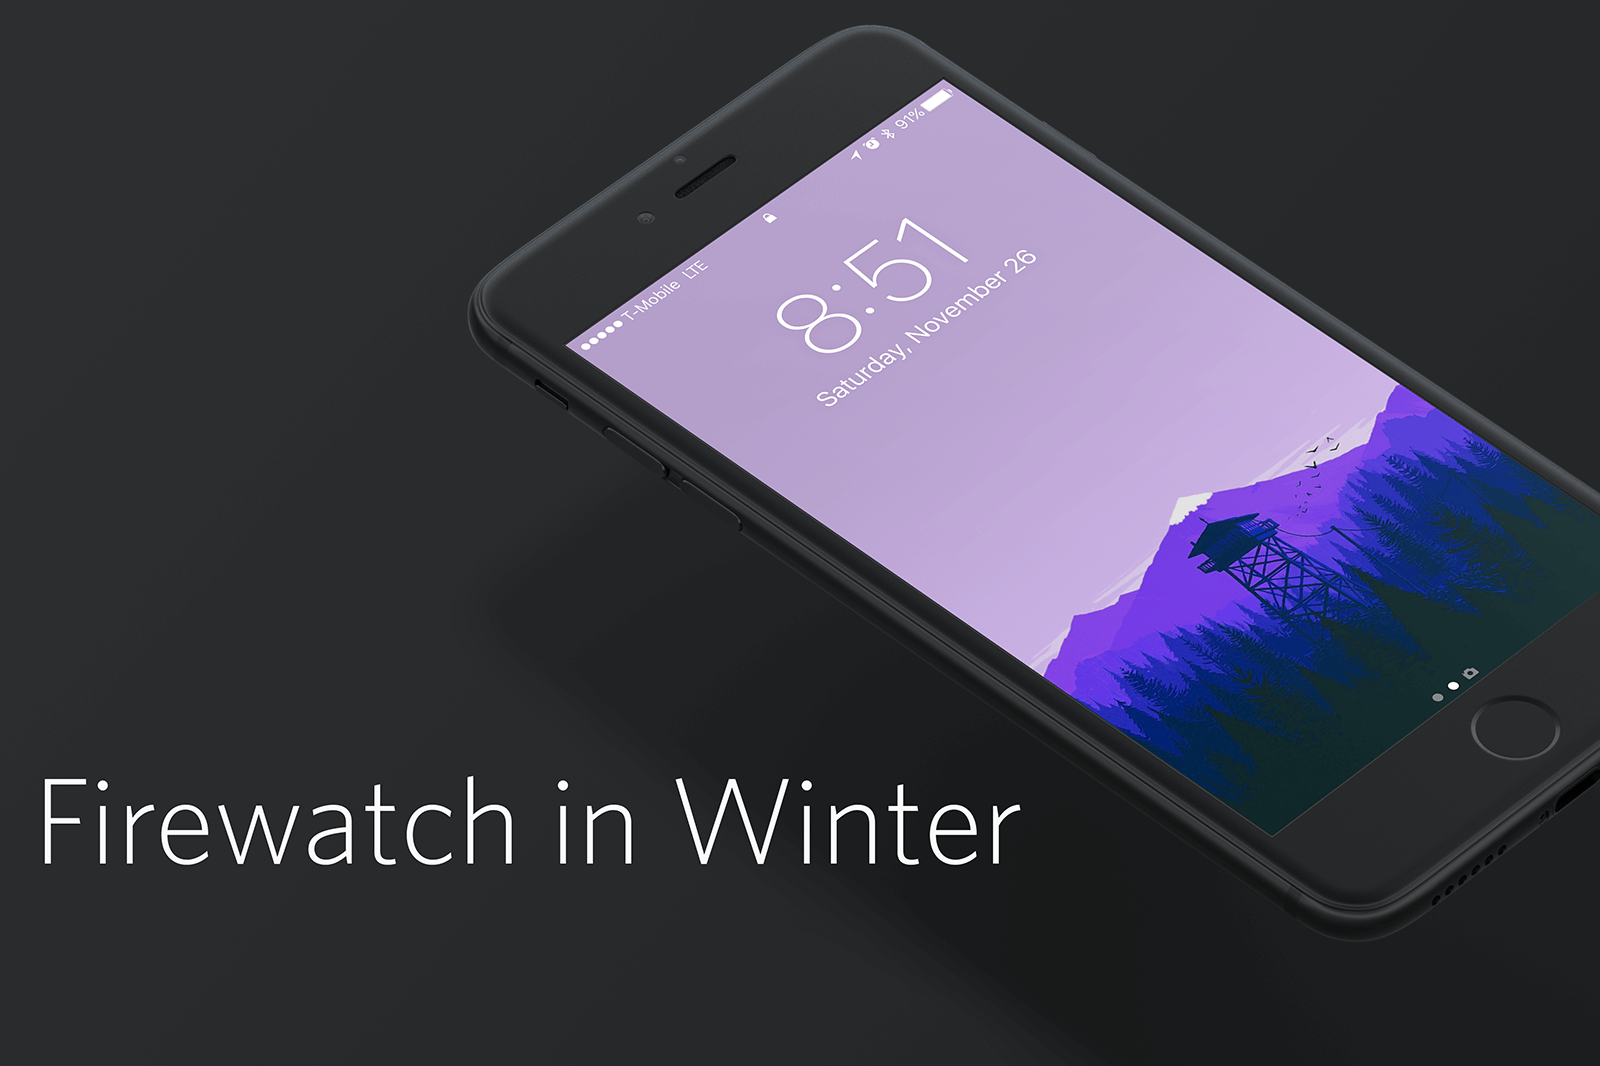 My old set of Firewatch wallpapers proved to be insanely popular, so I thought I'd bring it back with a slightly modified winter version.